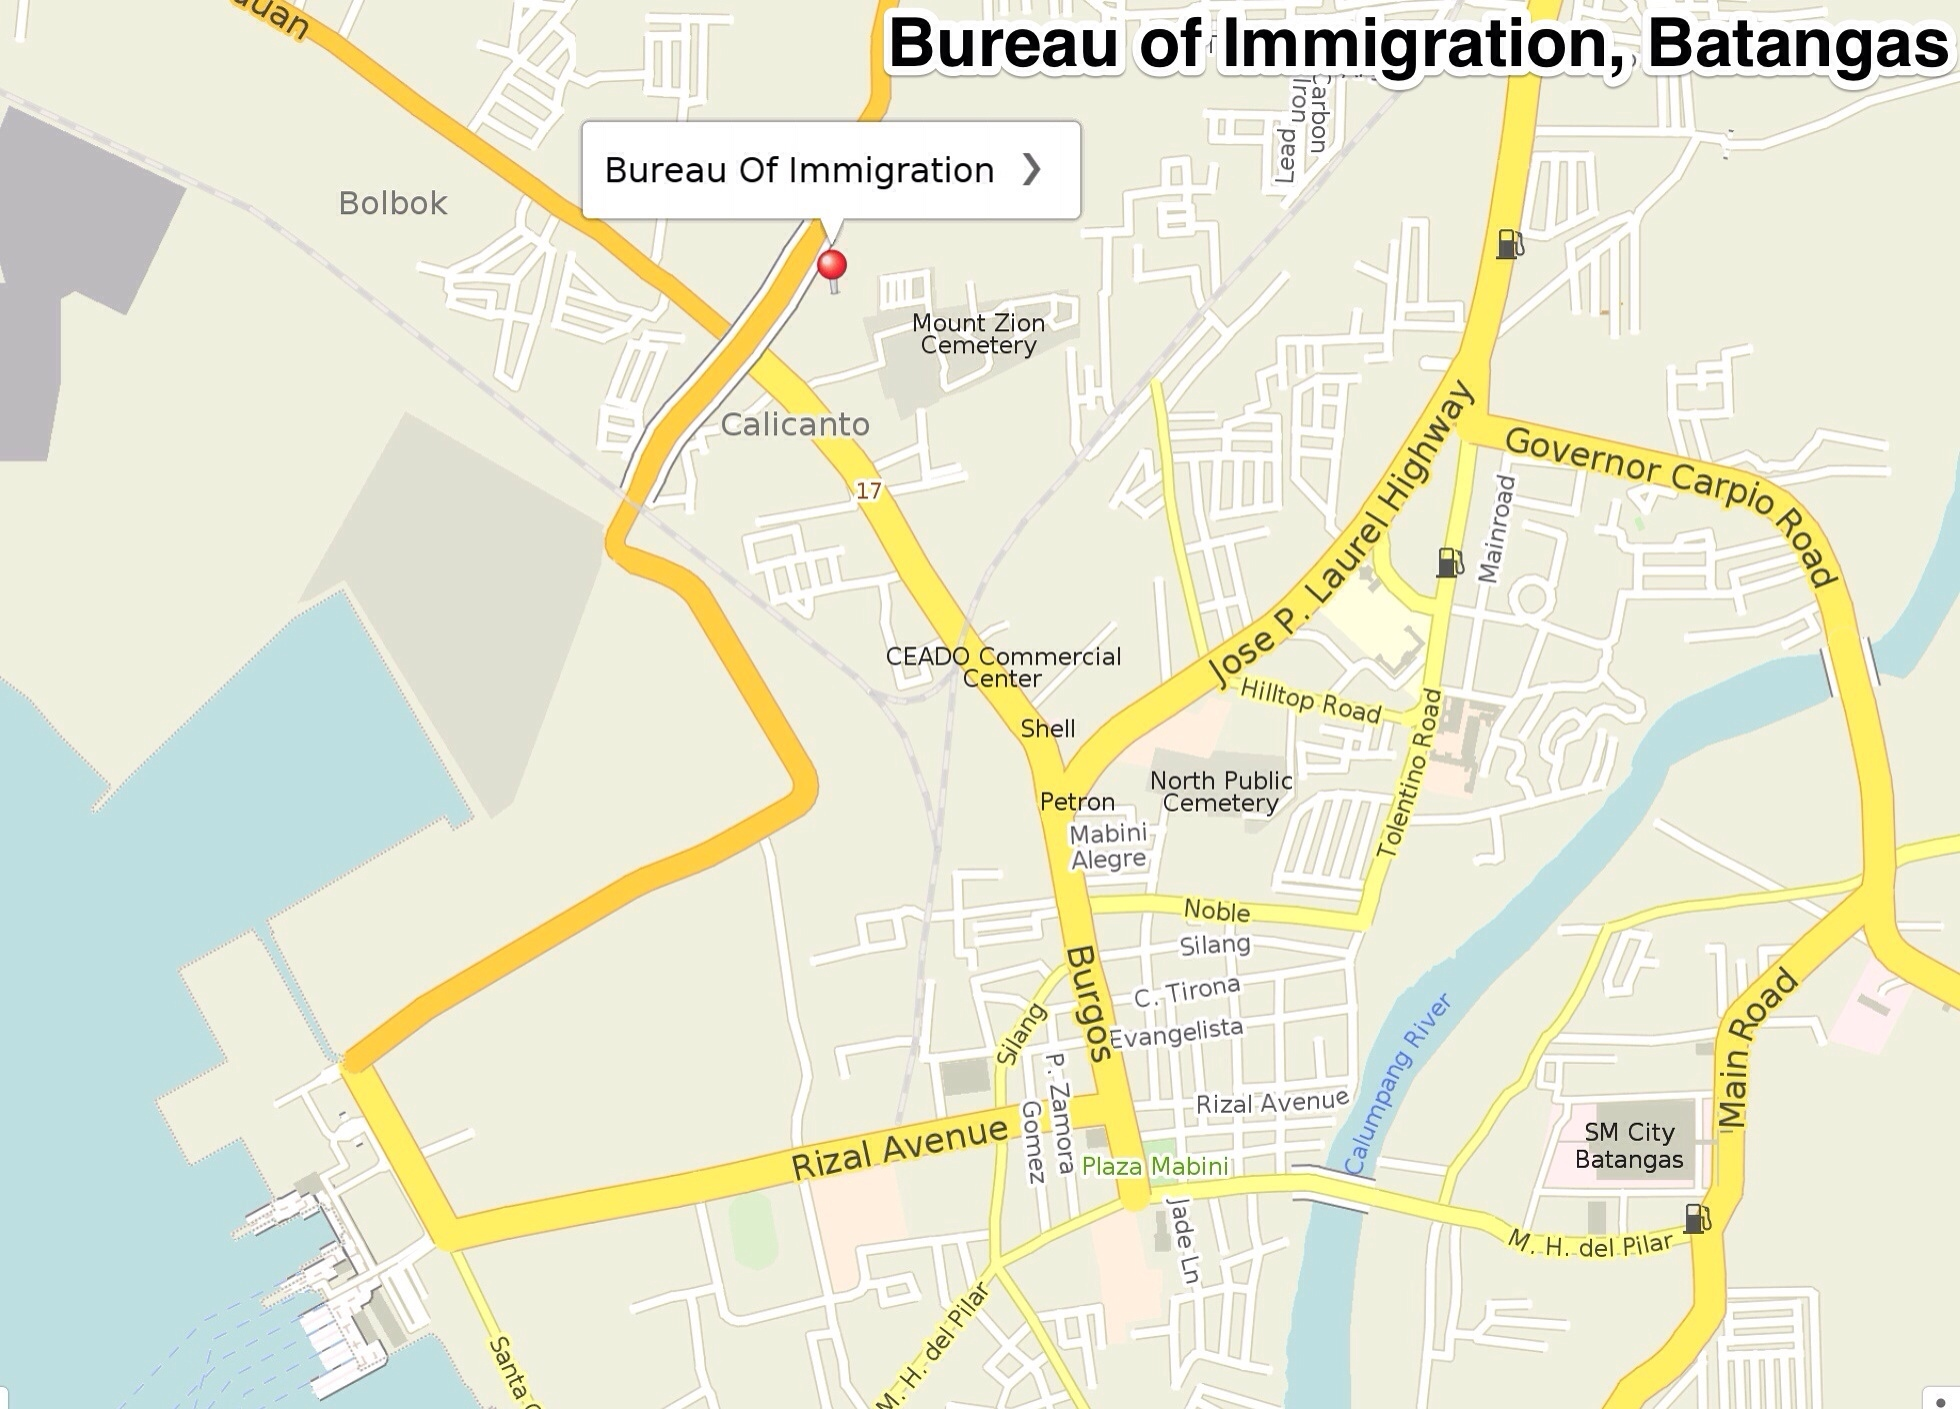 Bureau of immigration batangas